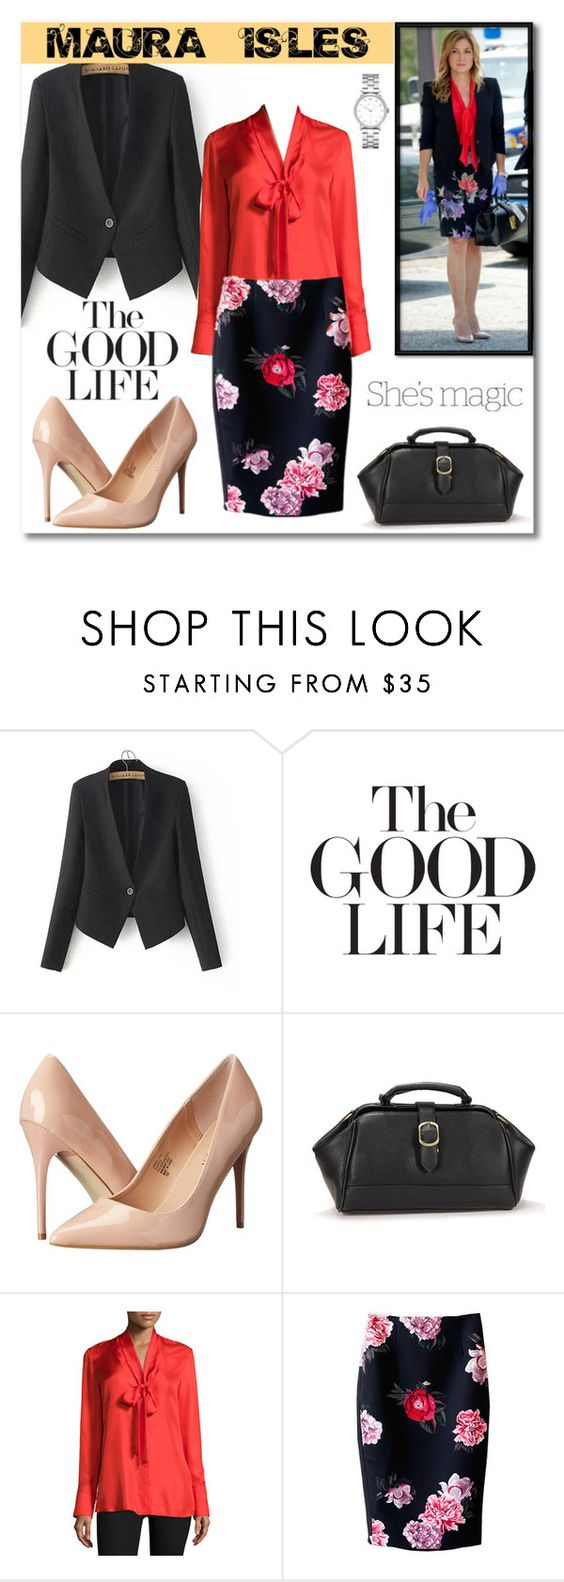 """maura isles style"" by lydiamarytin on Polyvore featuring moda, ADAM, Madden Girl, rag & bone, C/MEO COLLECTIVE, Marc by Marc Jacobs ve Nicole"